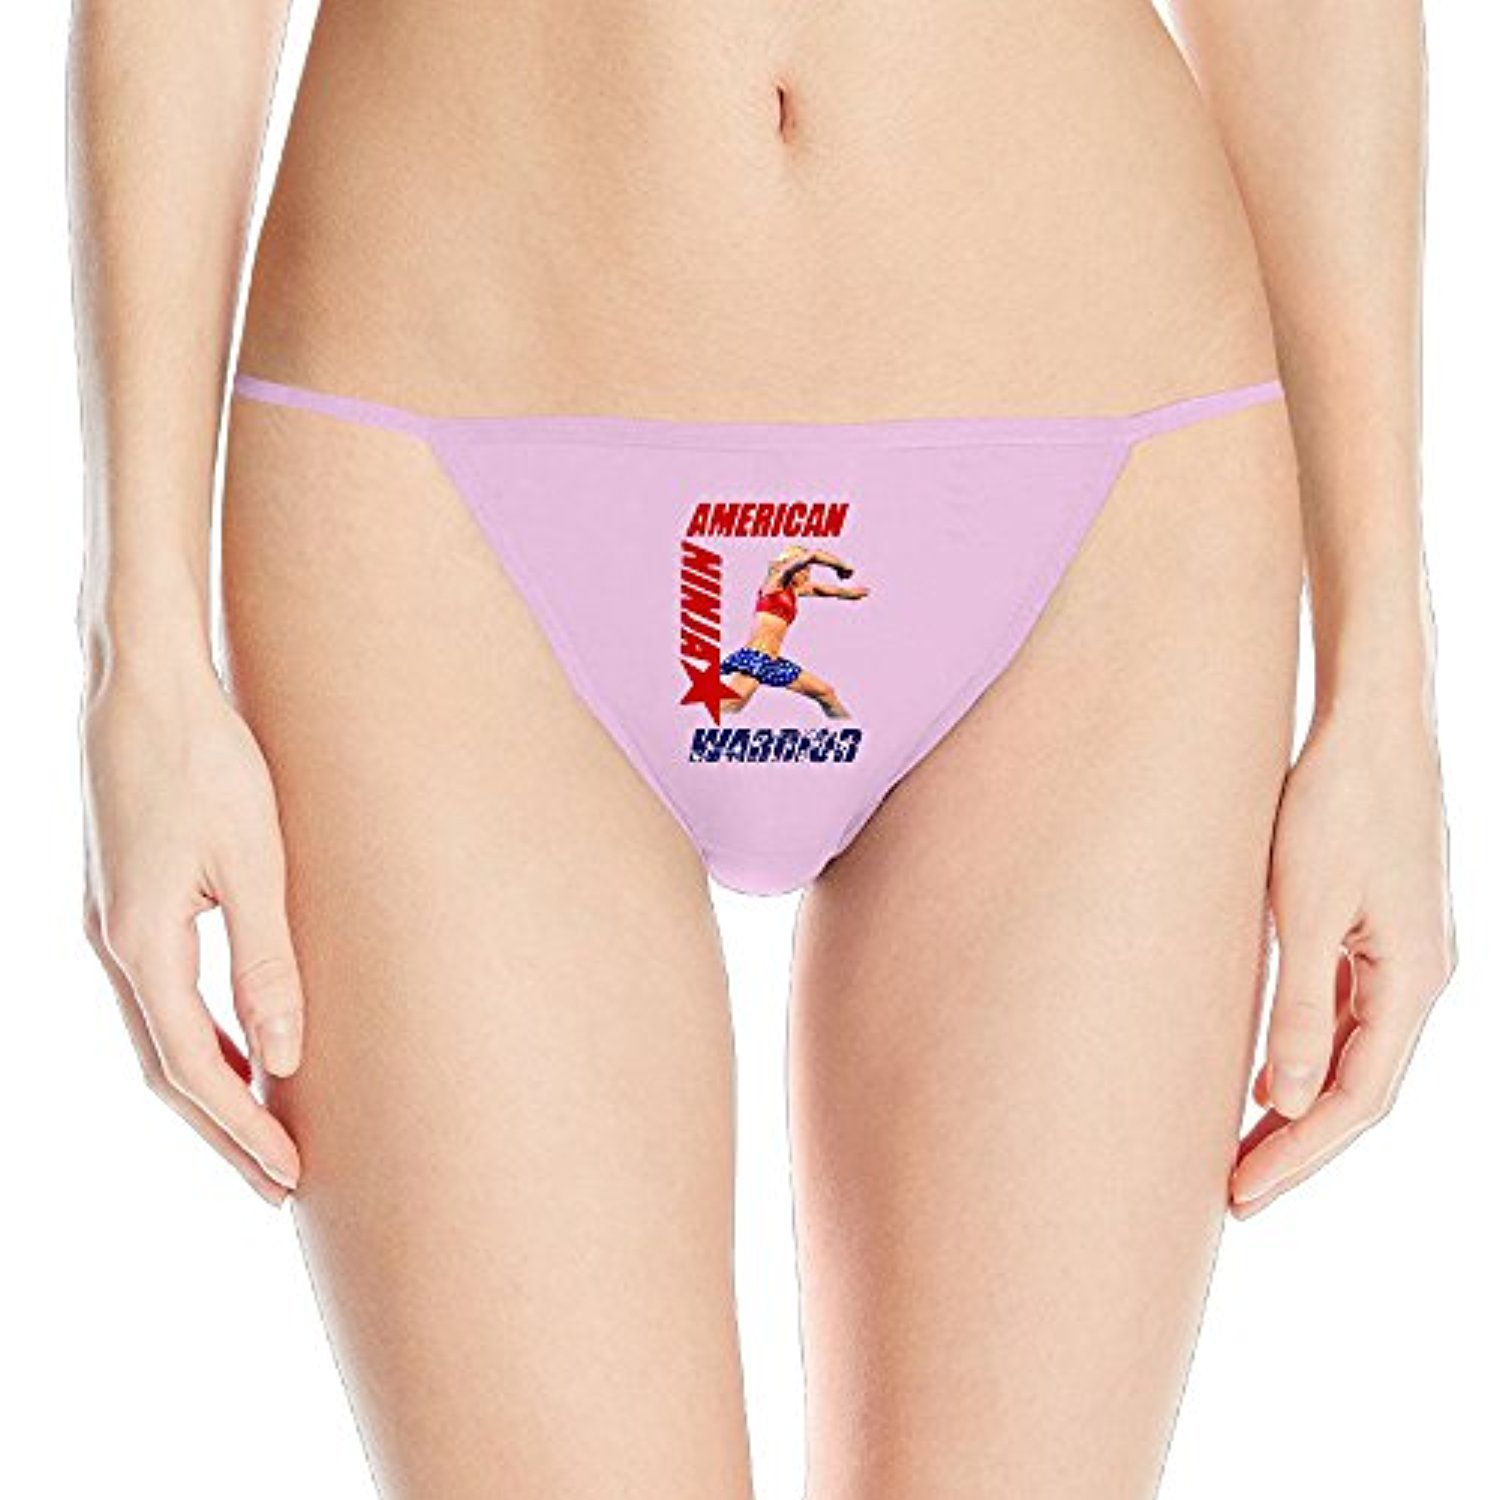 e71b9d157205 Romant 2016 American Ninja Warrior Champion Jessie Graff Sexy Thong Panty  -- Awesome products selected by Anna Churchill